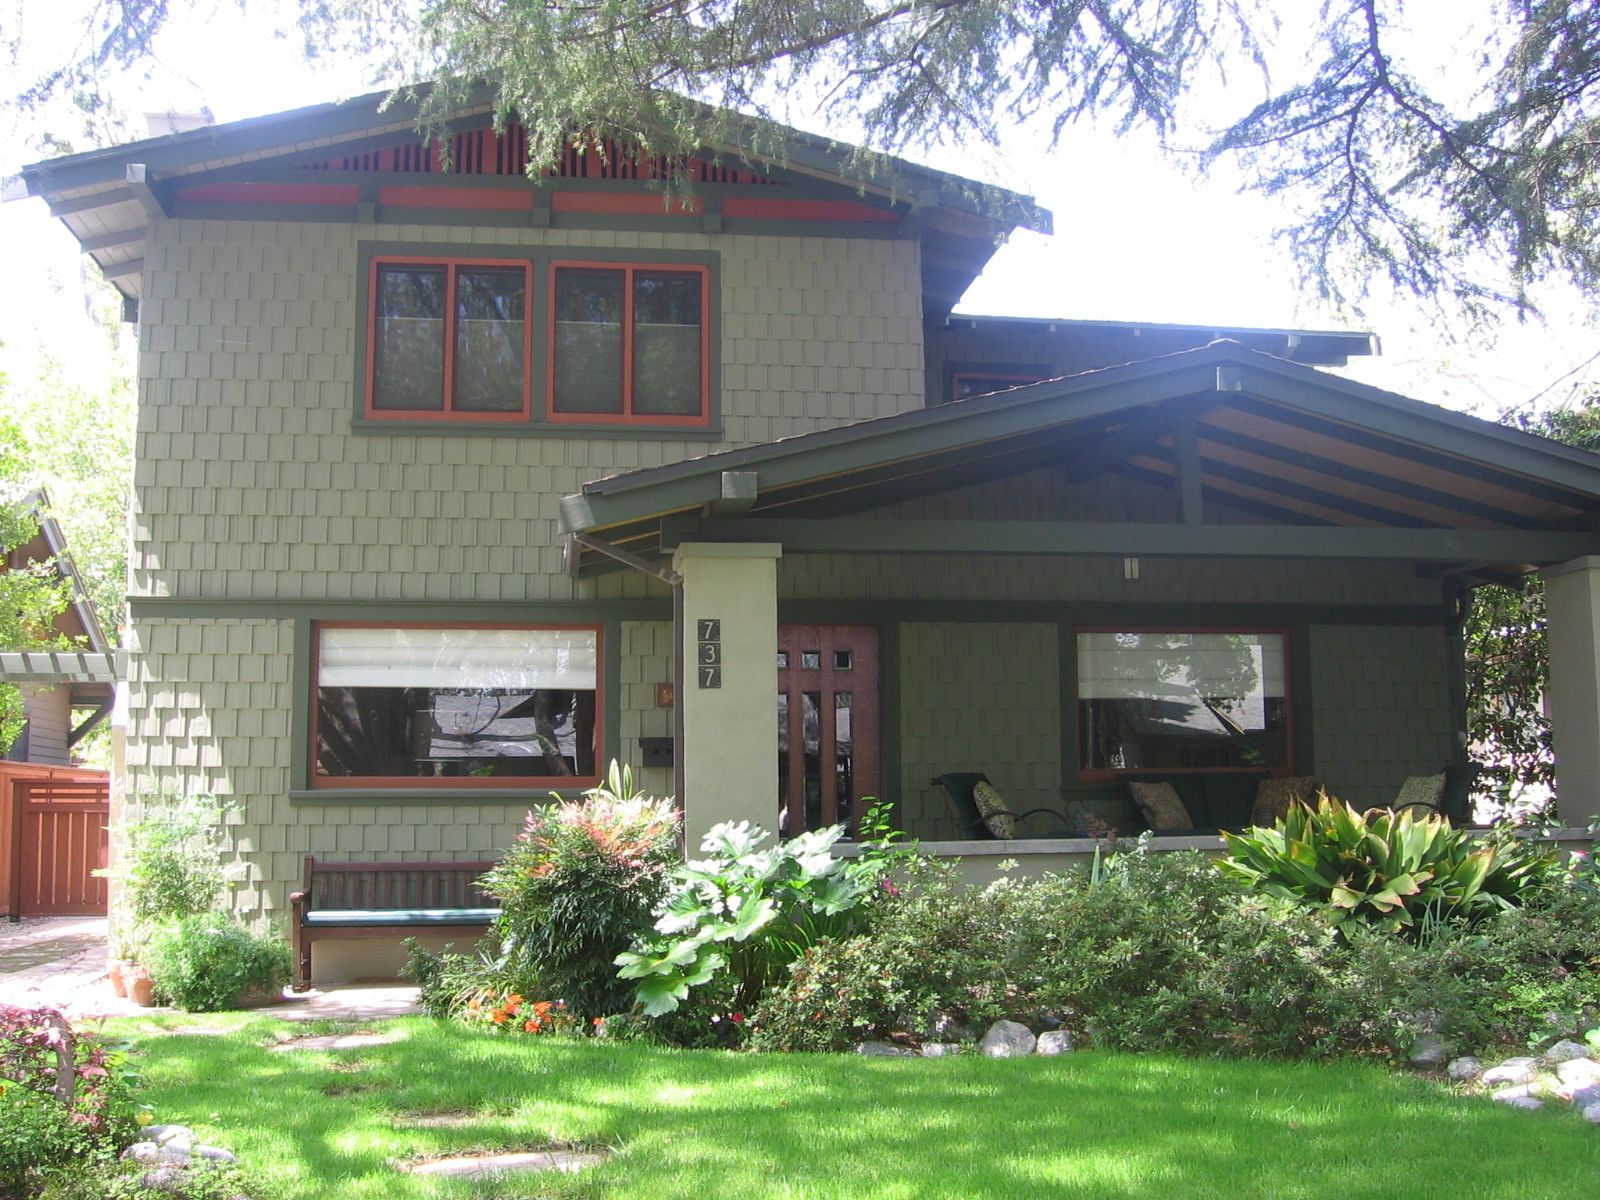 Bungalow Heaven Is A Collection Of Historic Homes In Pasadena The Were Primarily